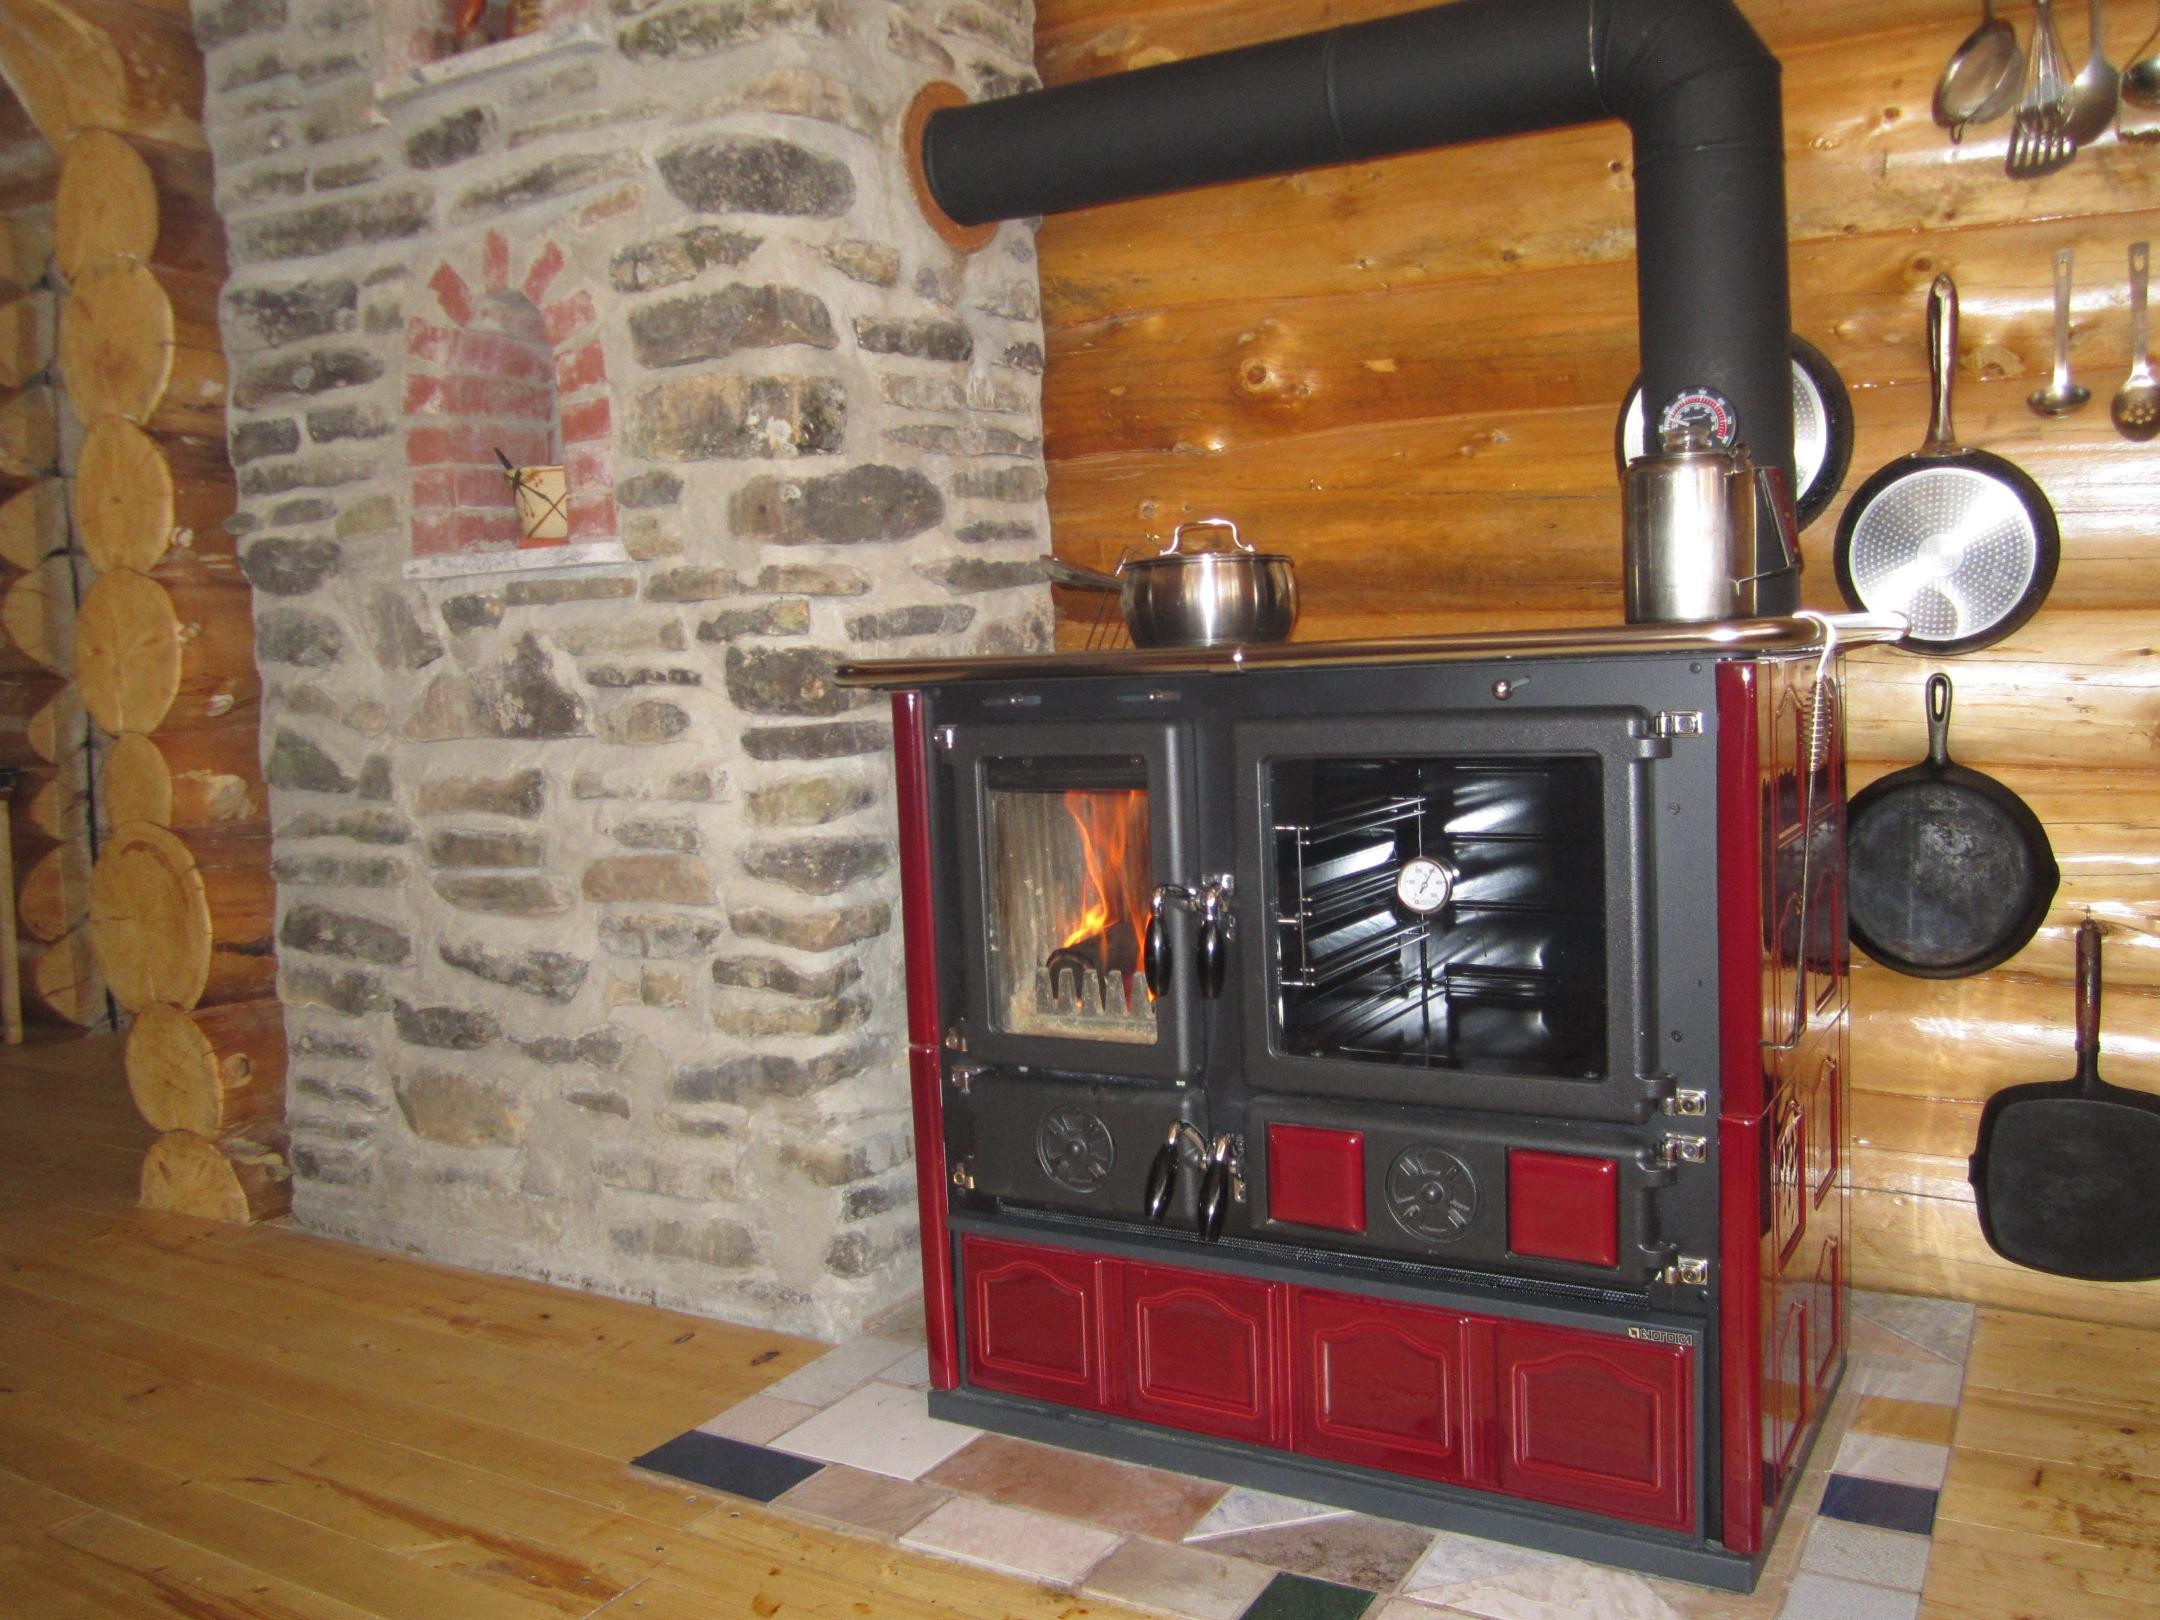 Wood Cook Stove La Nordica Rosa Maiolica Bordeaux